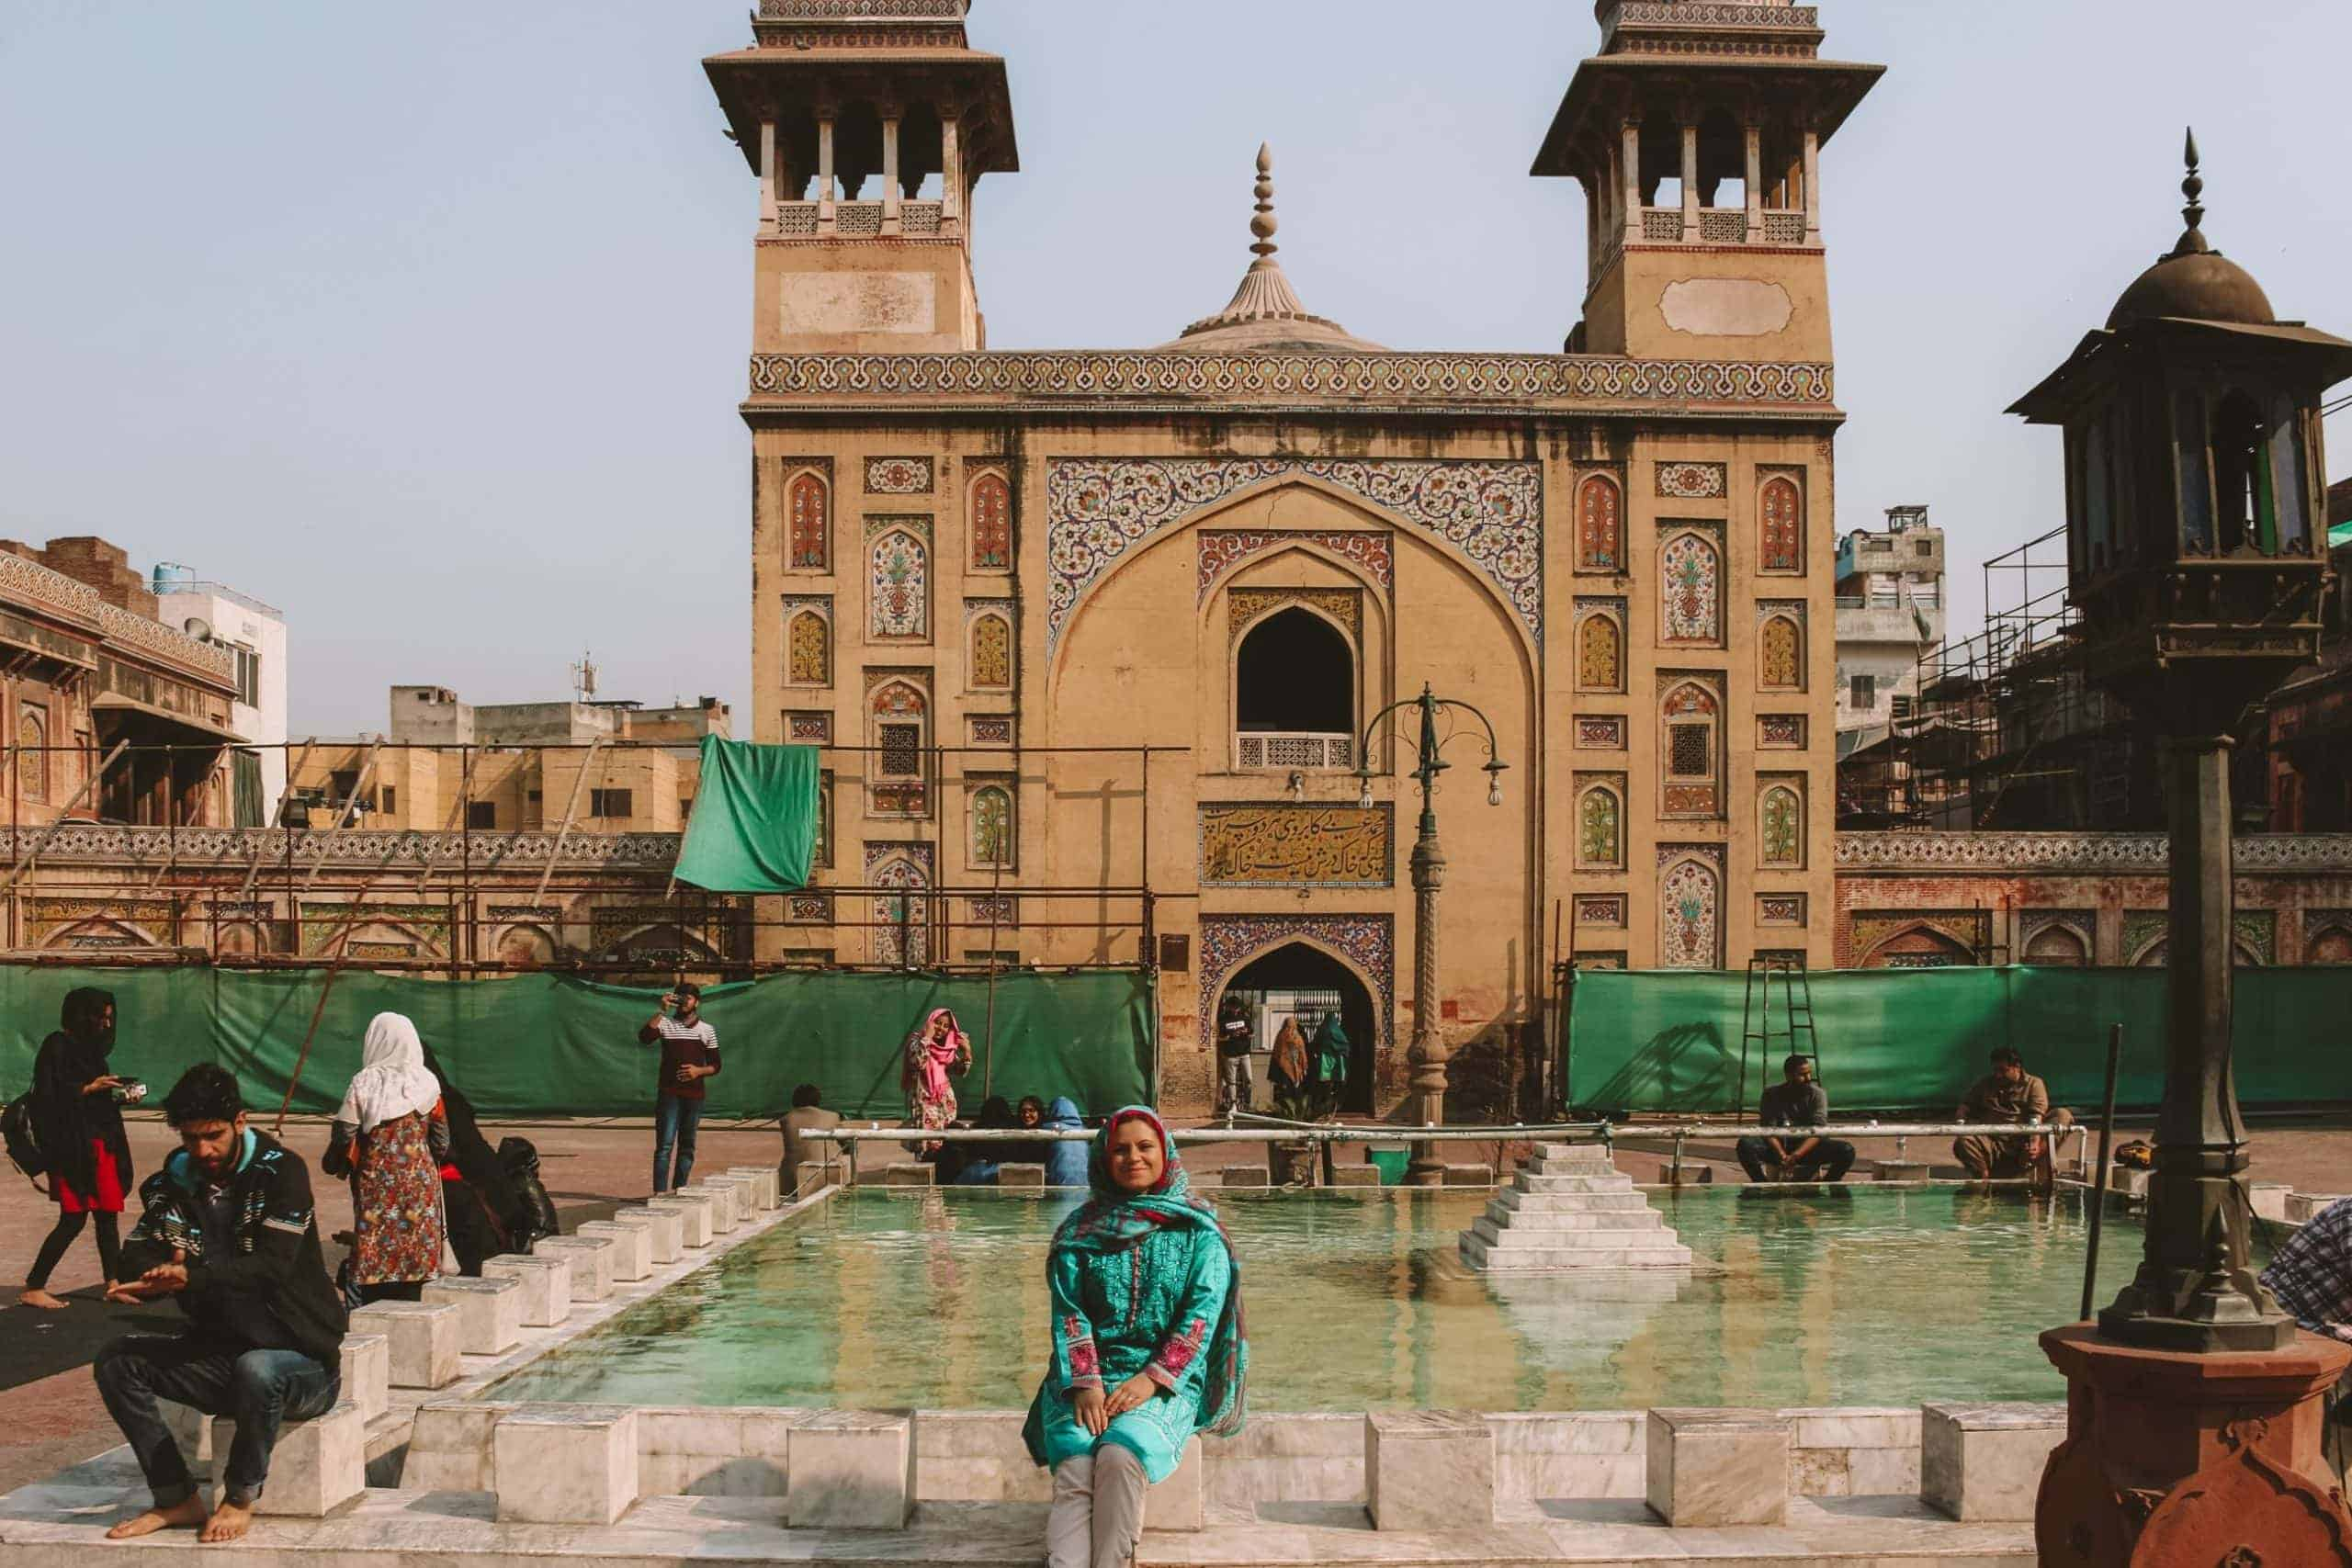 Two days in Lahore: Itinerary + Things to do